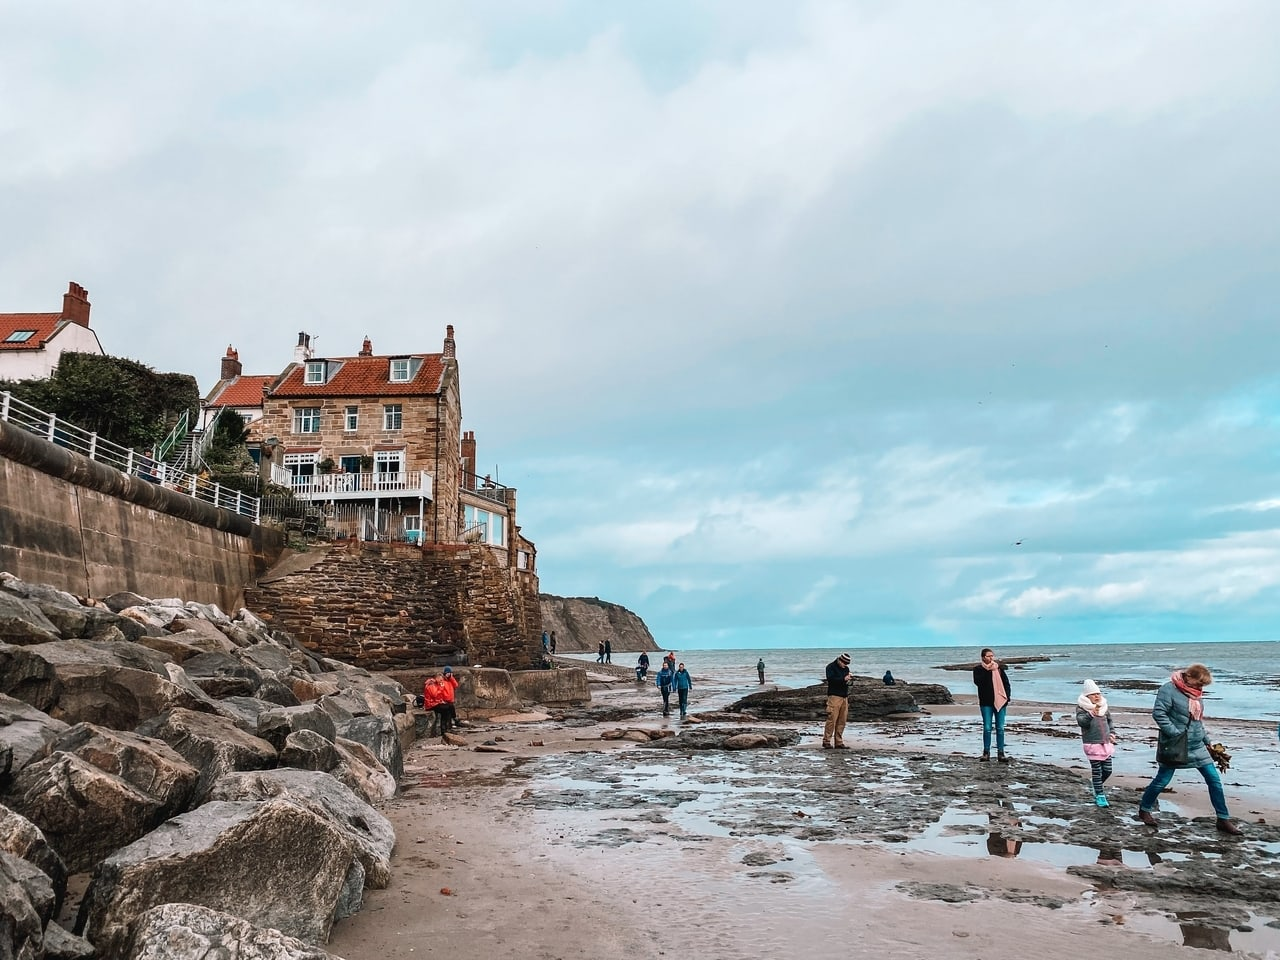 People playing on the beach at Robin Hood's Bay on the North Yorkshire Coast